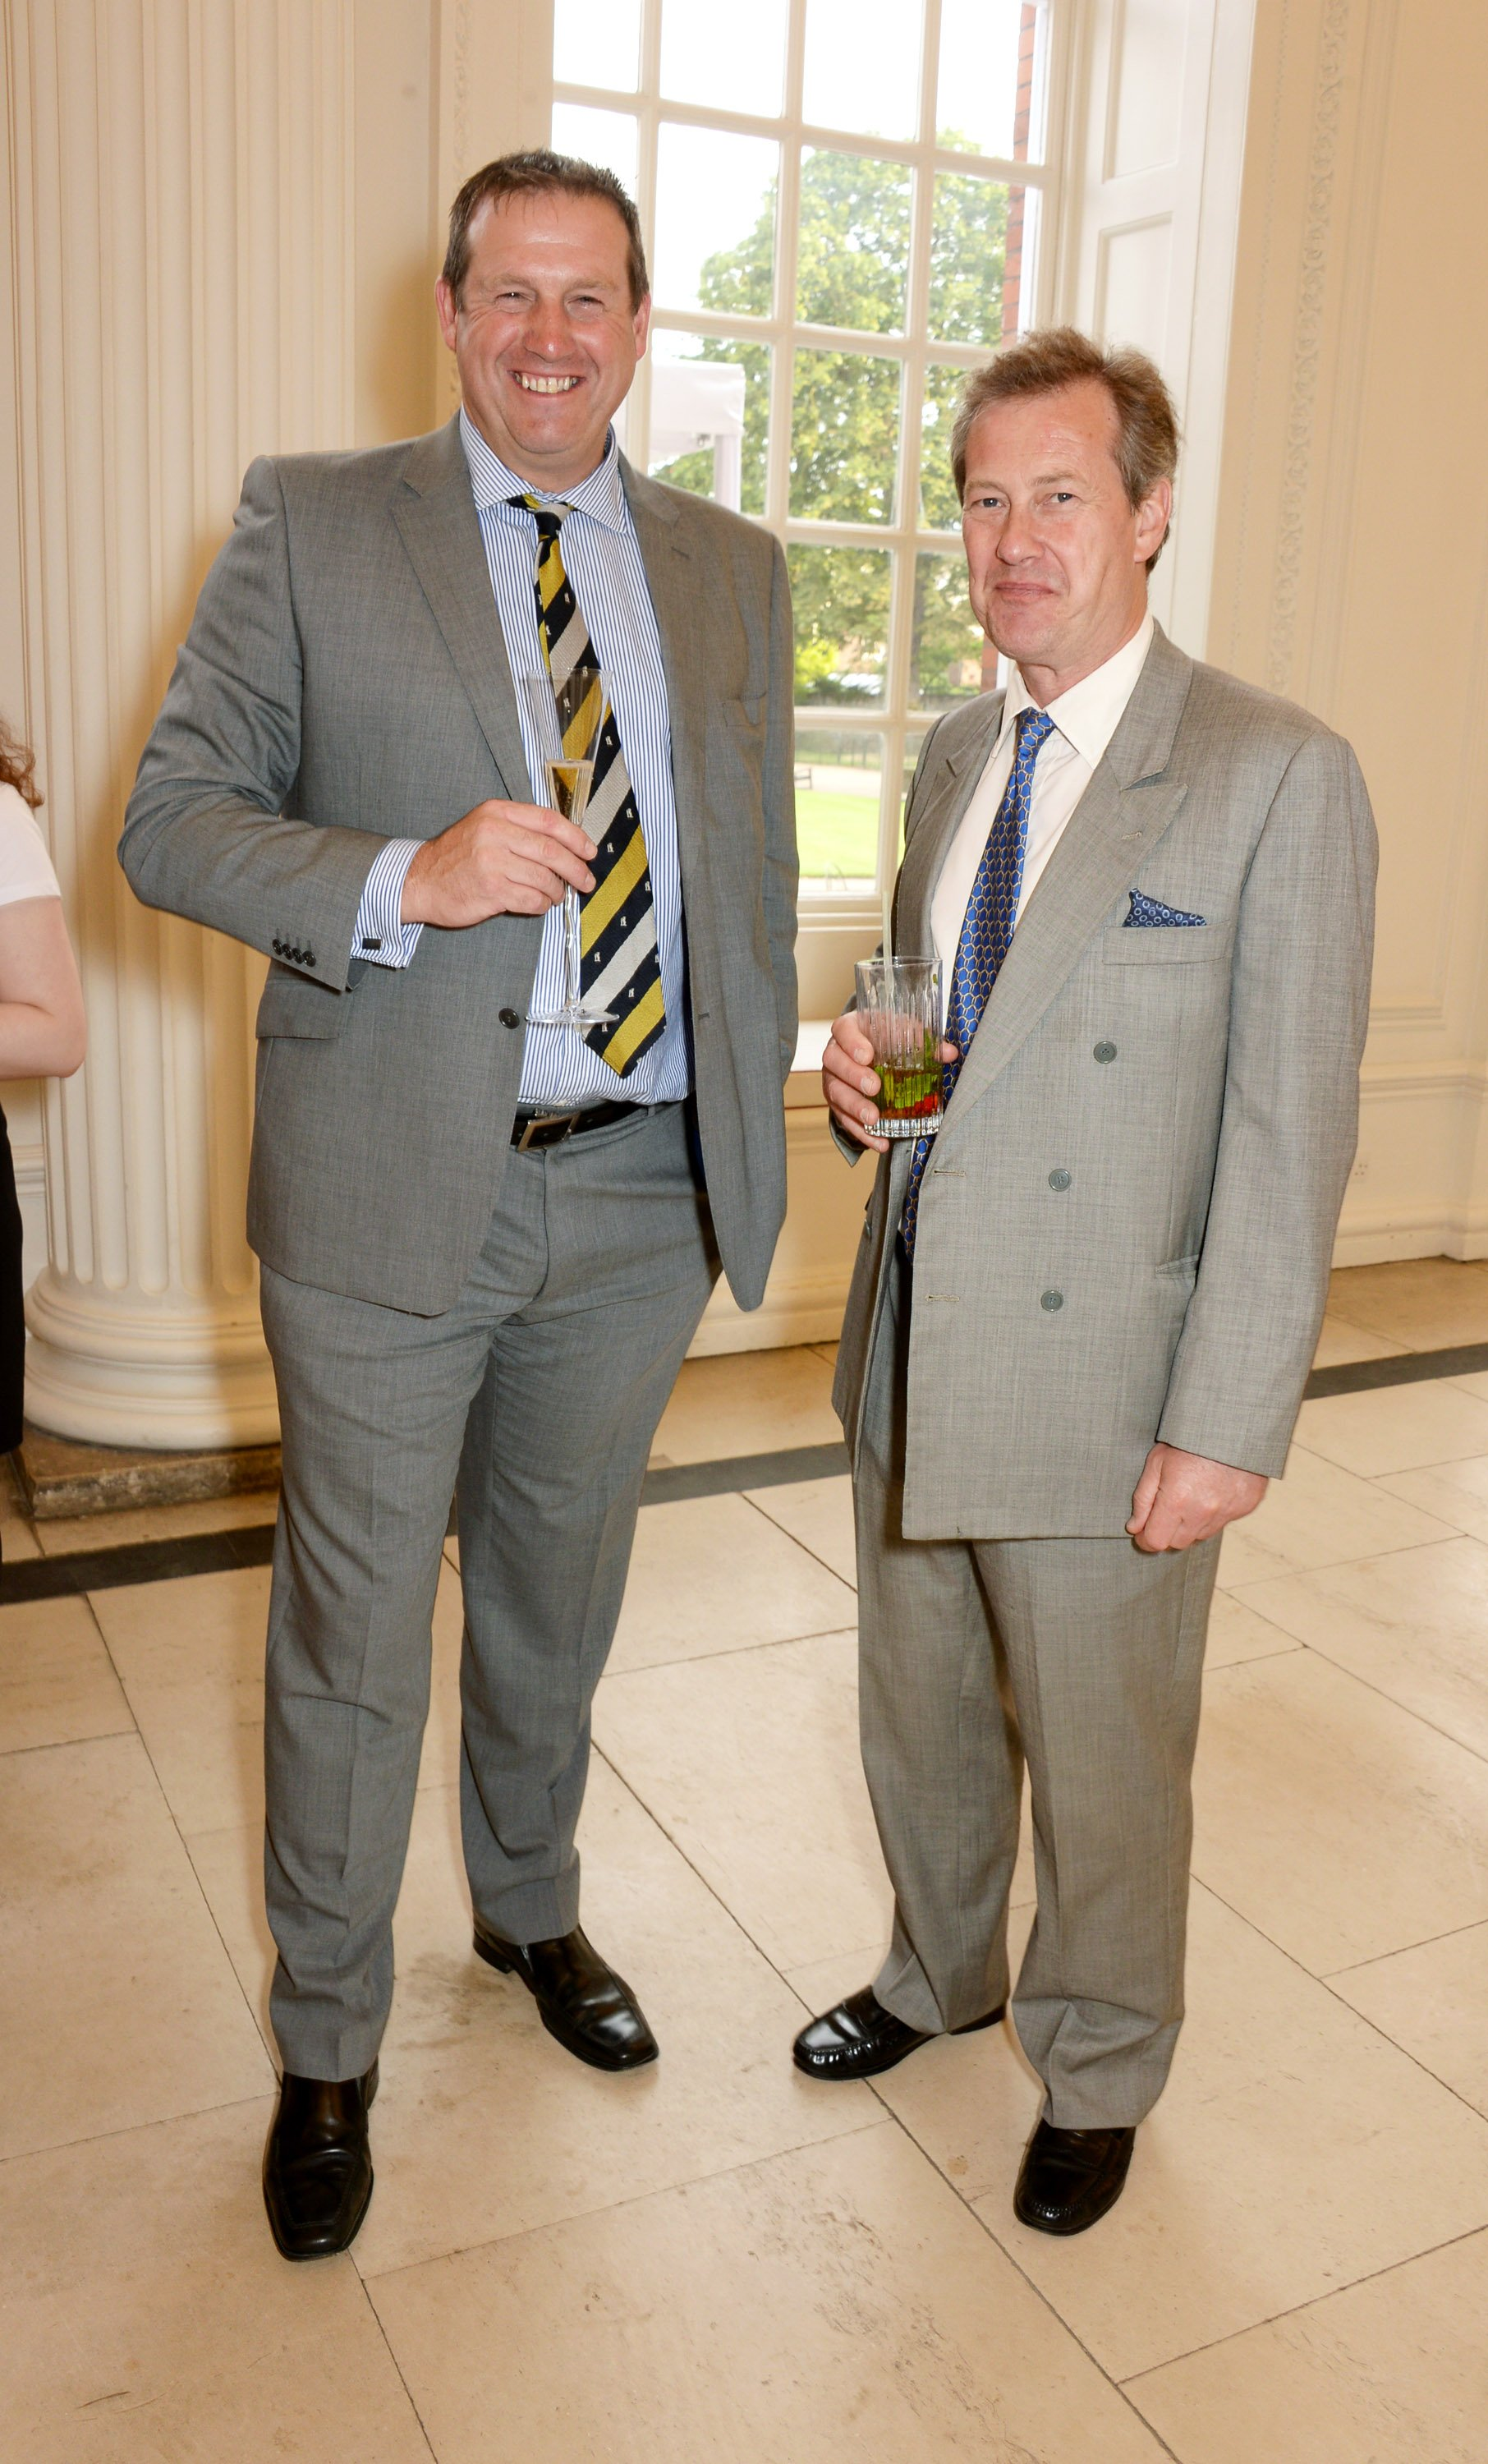 Tim Munton and Lord Ivar Mountbatten at Kensington Palace on the eve of 'Dockers Flannels For Heroes' cricket match on June 19, 2014 | Photo: GettyImages